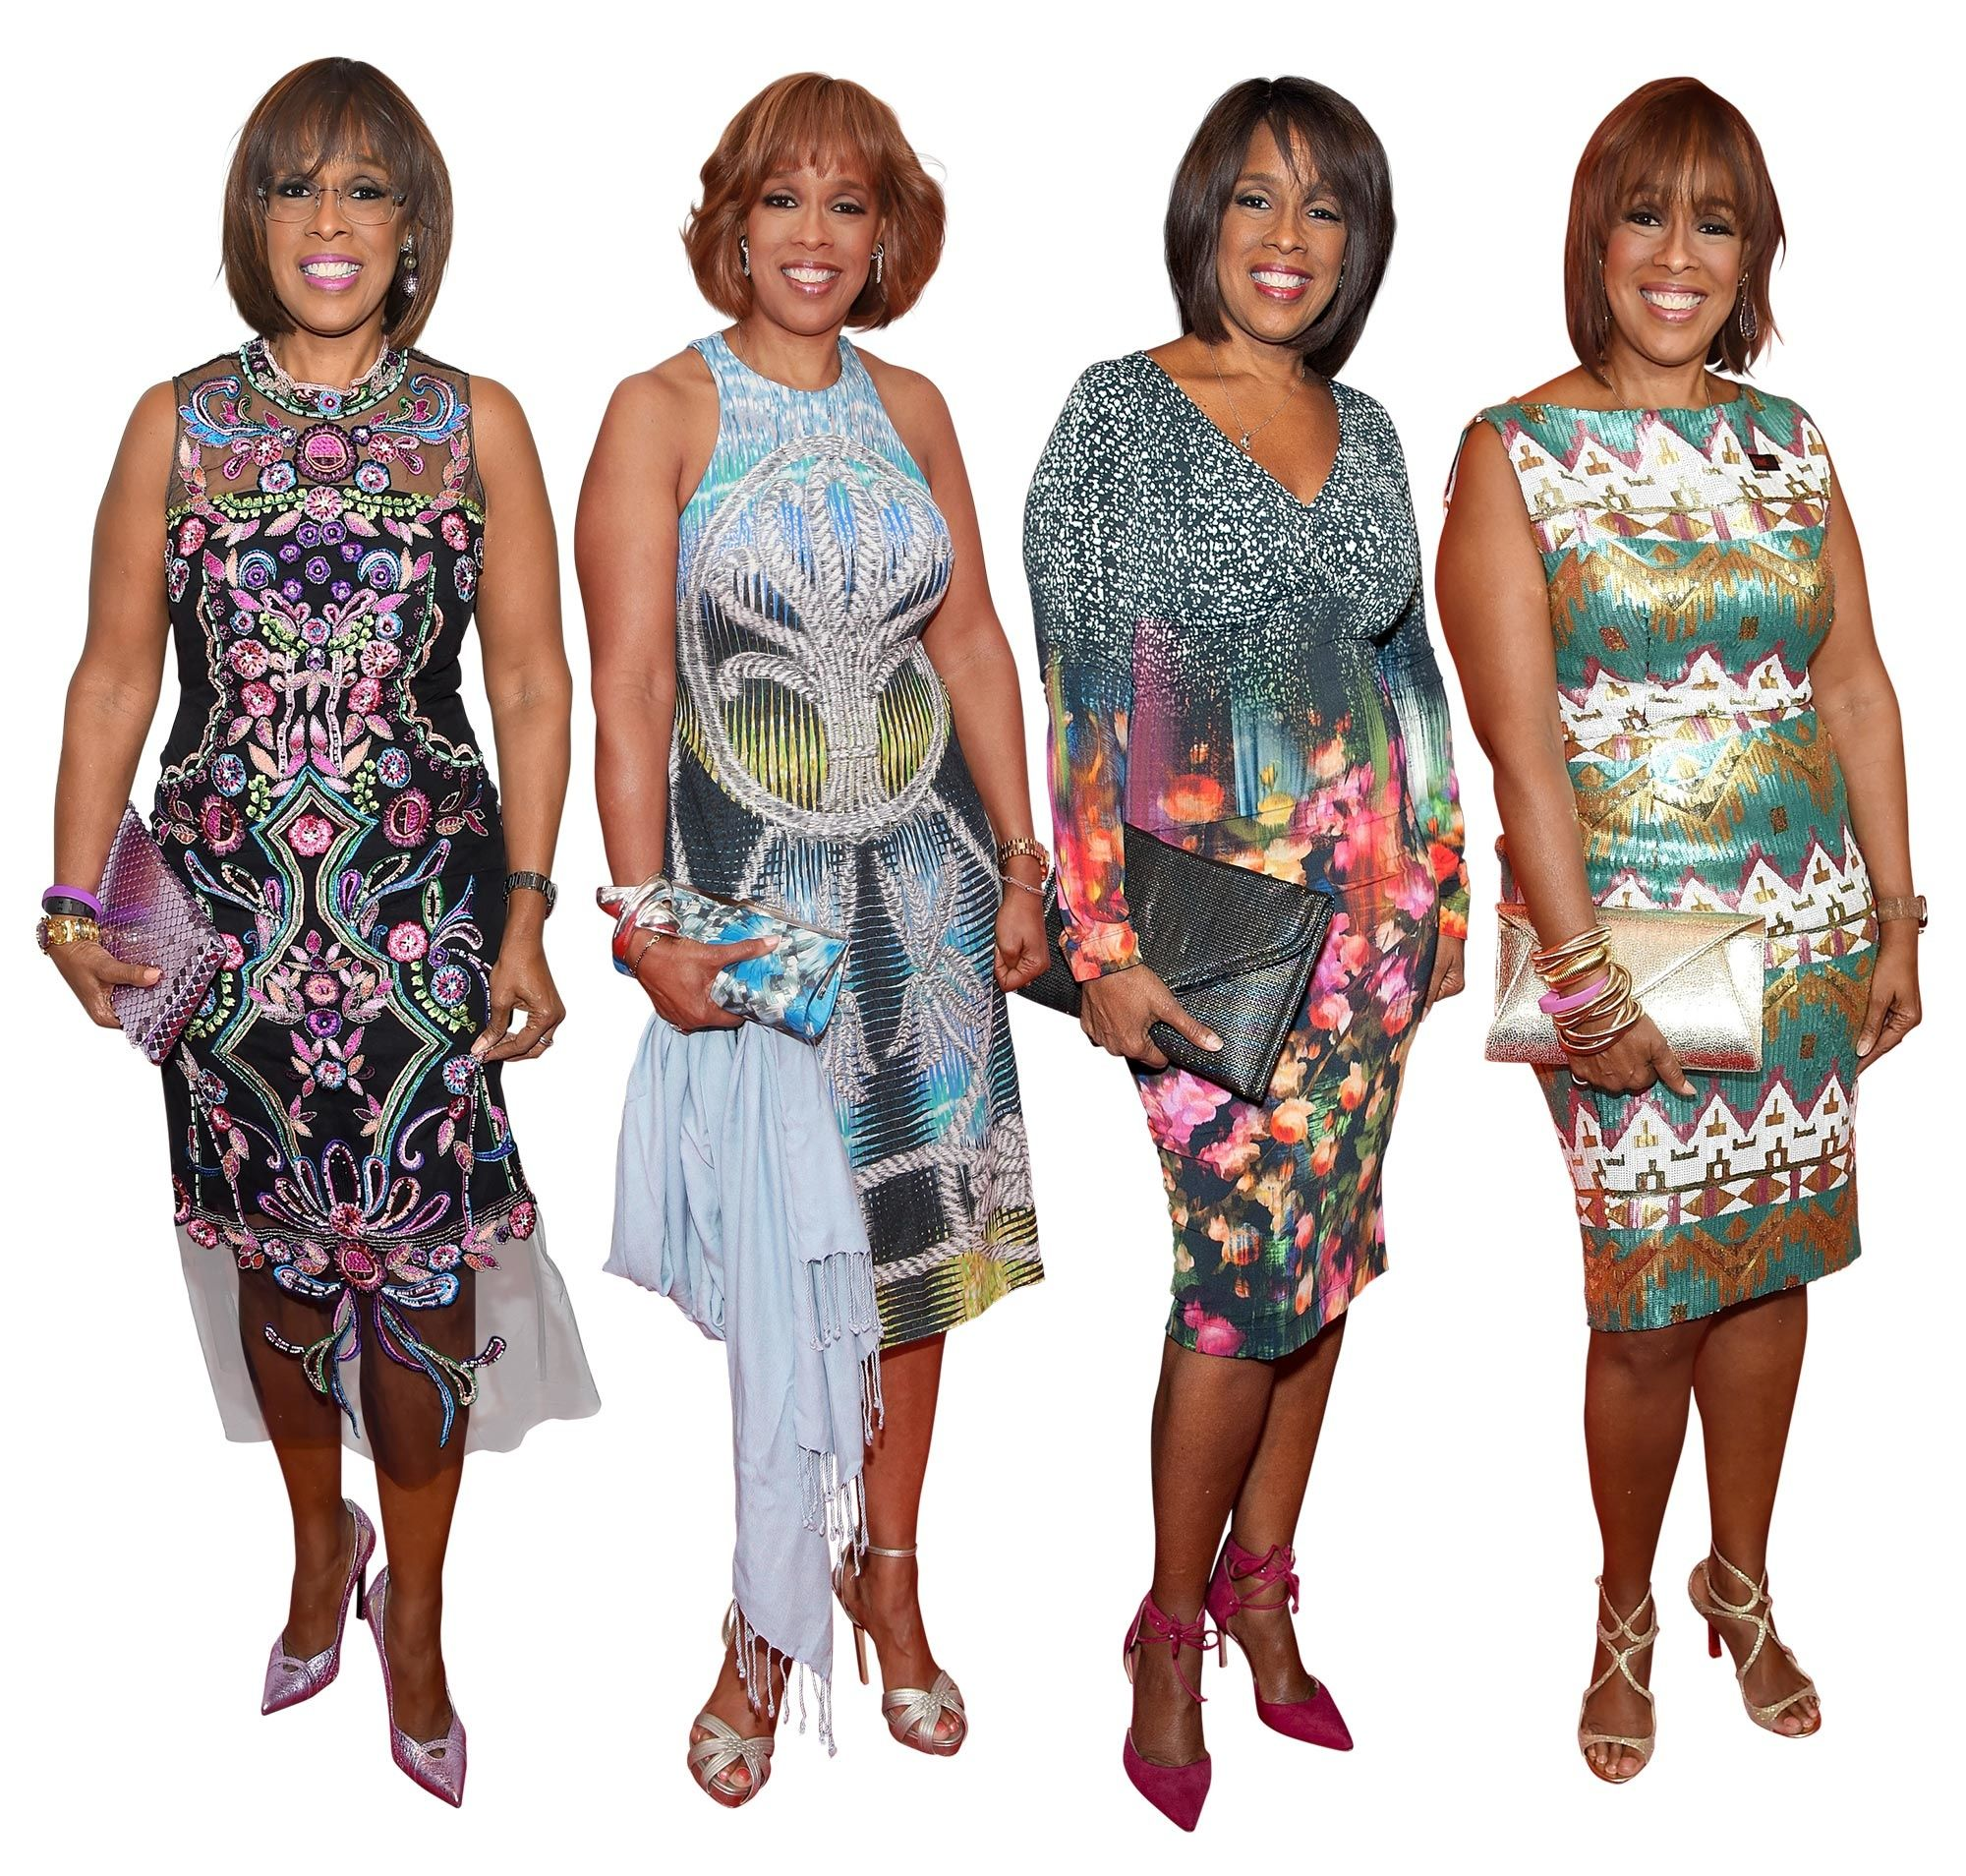 Gayle King wearing a variety pretty print and patterned dresses.